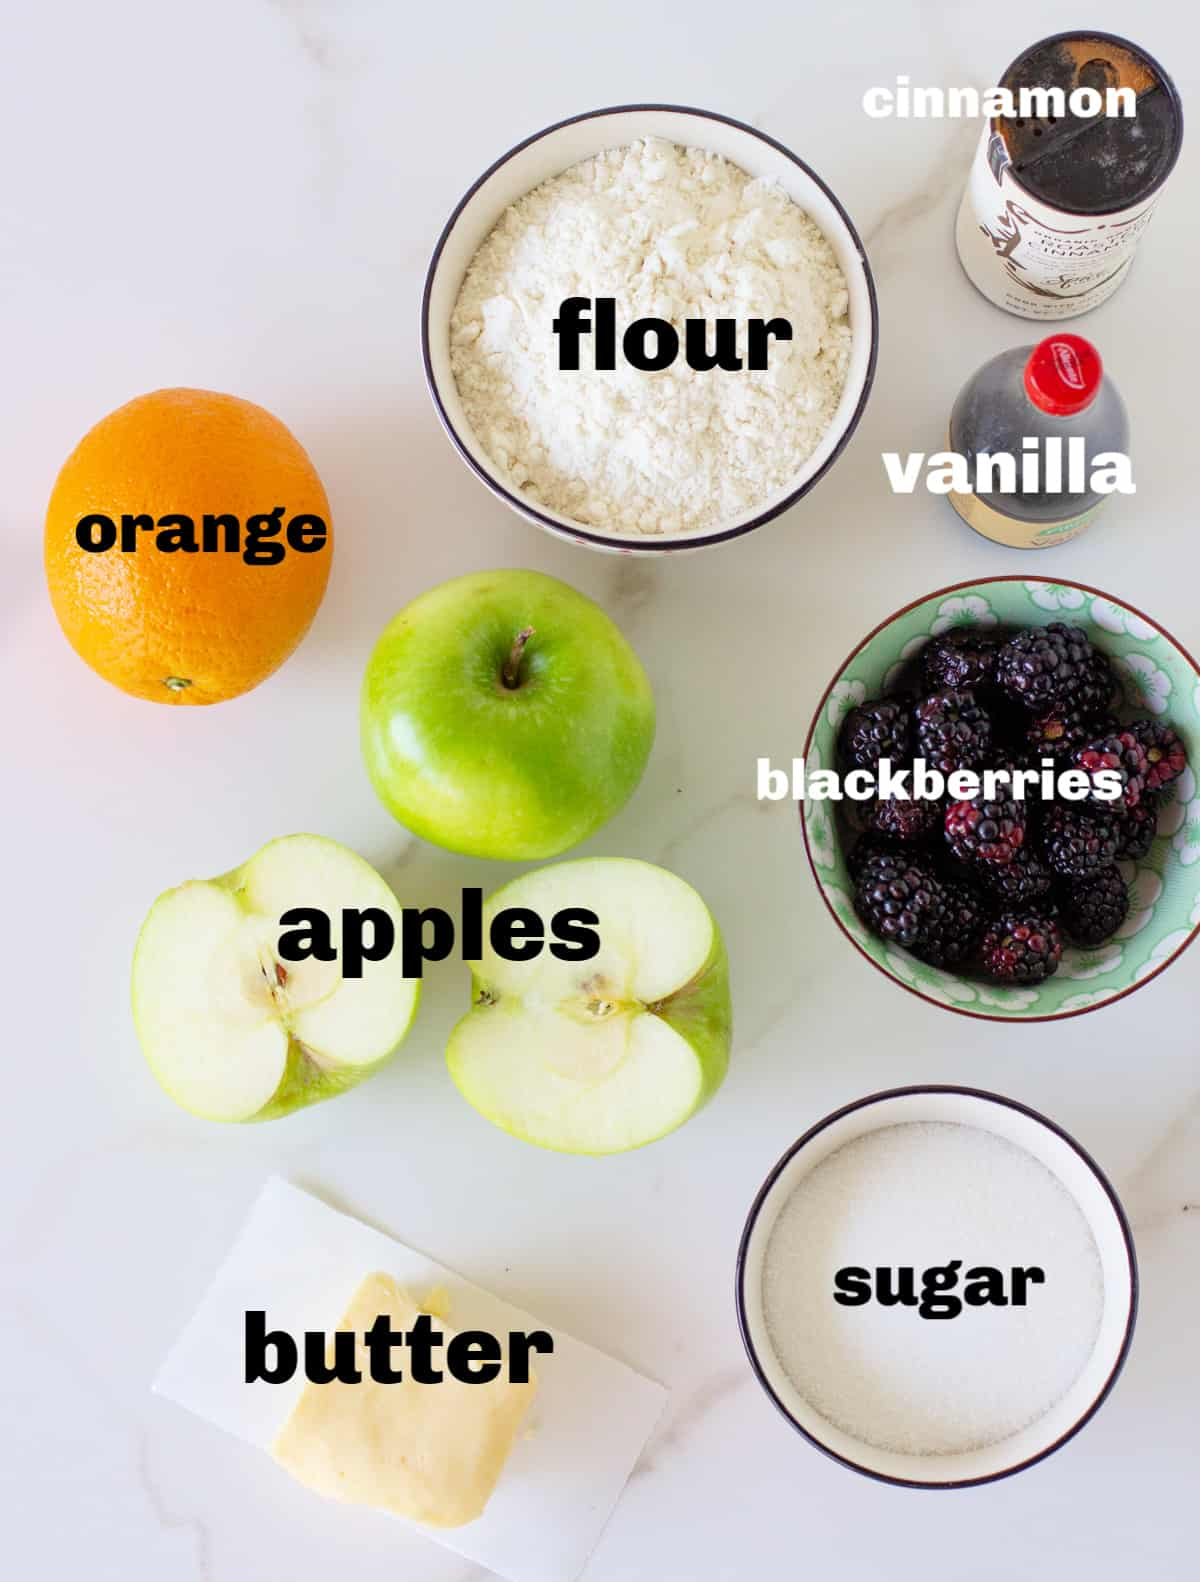 ingredients for apple blackberry crisp in bowls on white surface